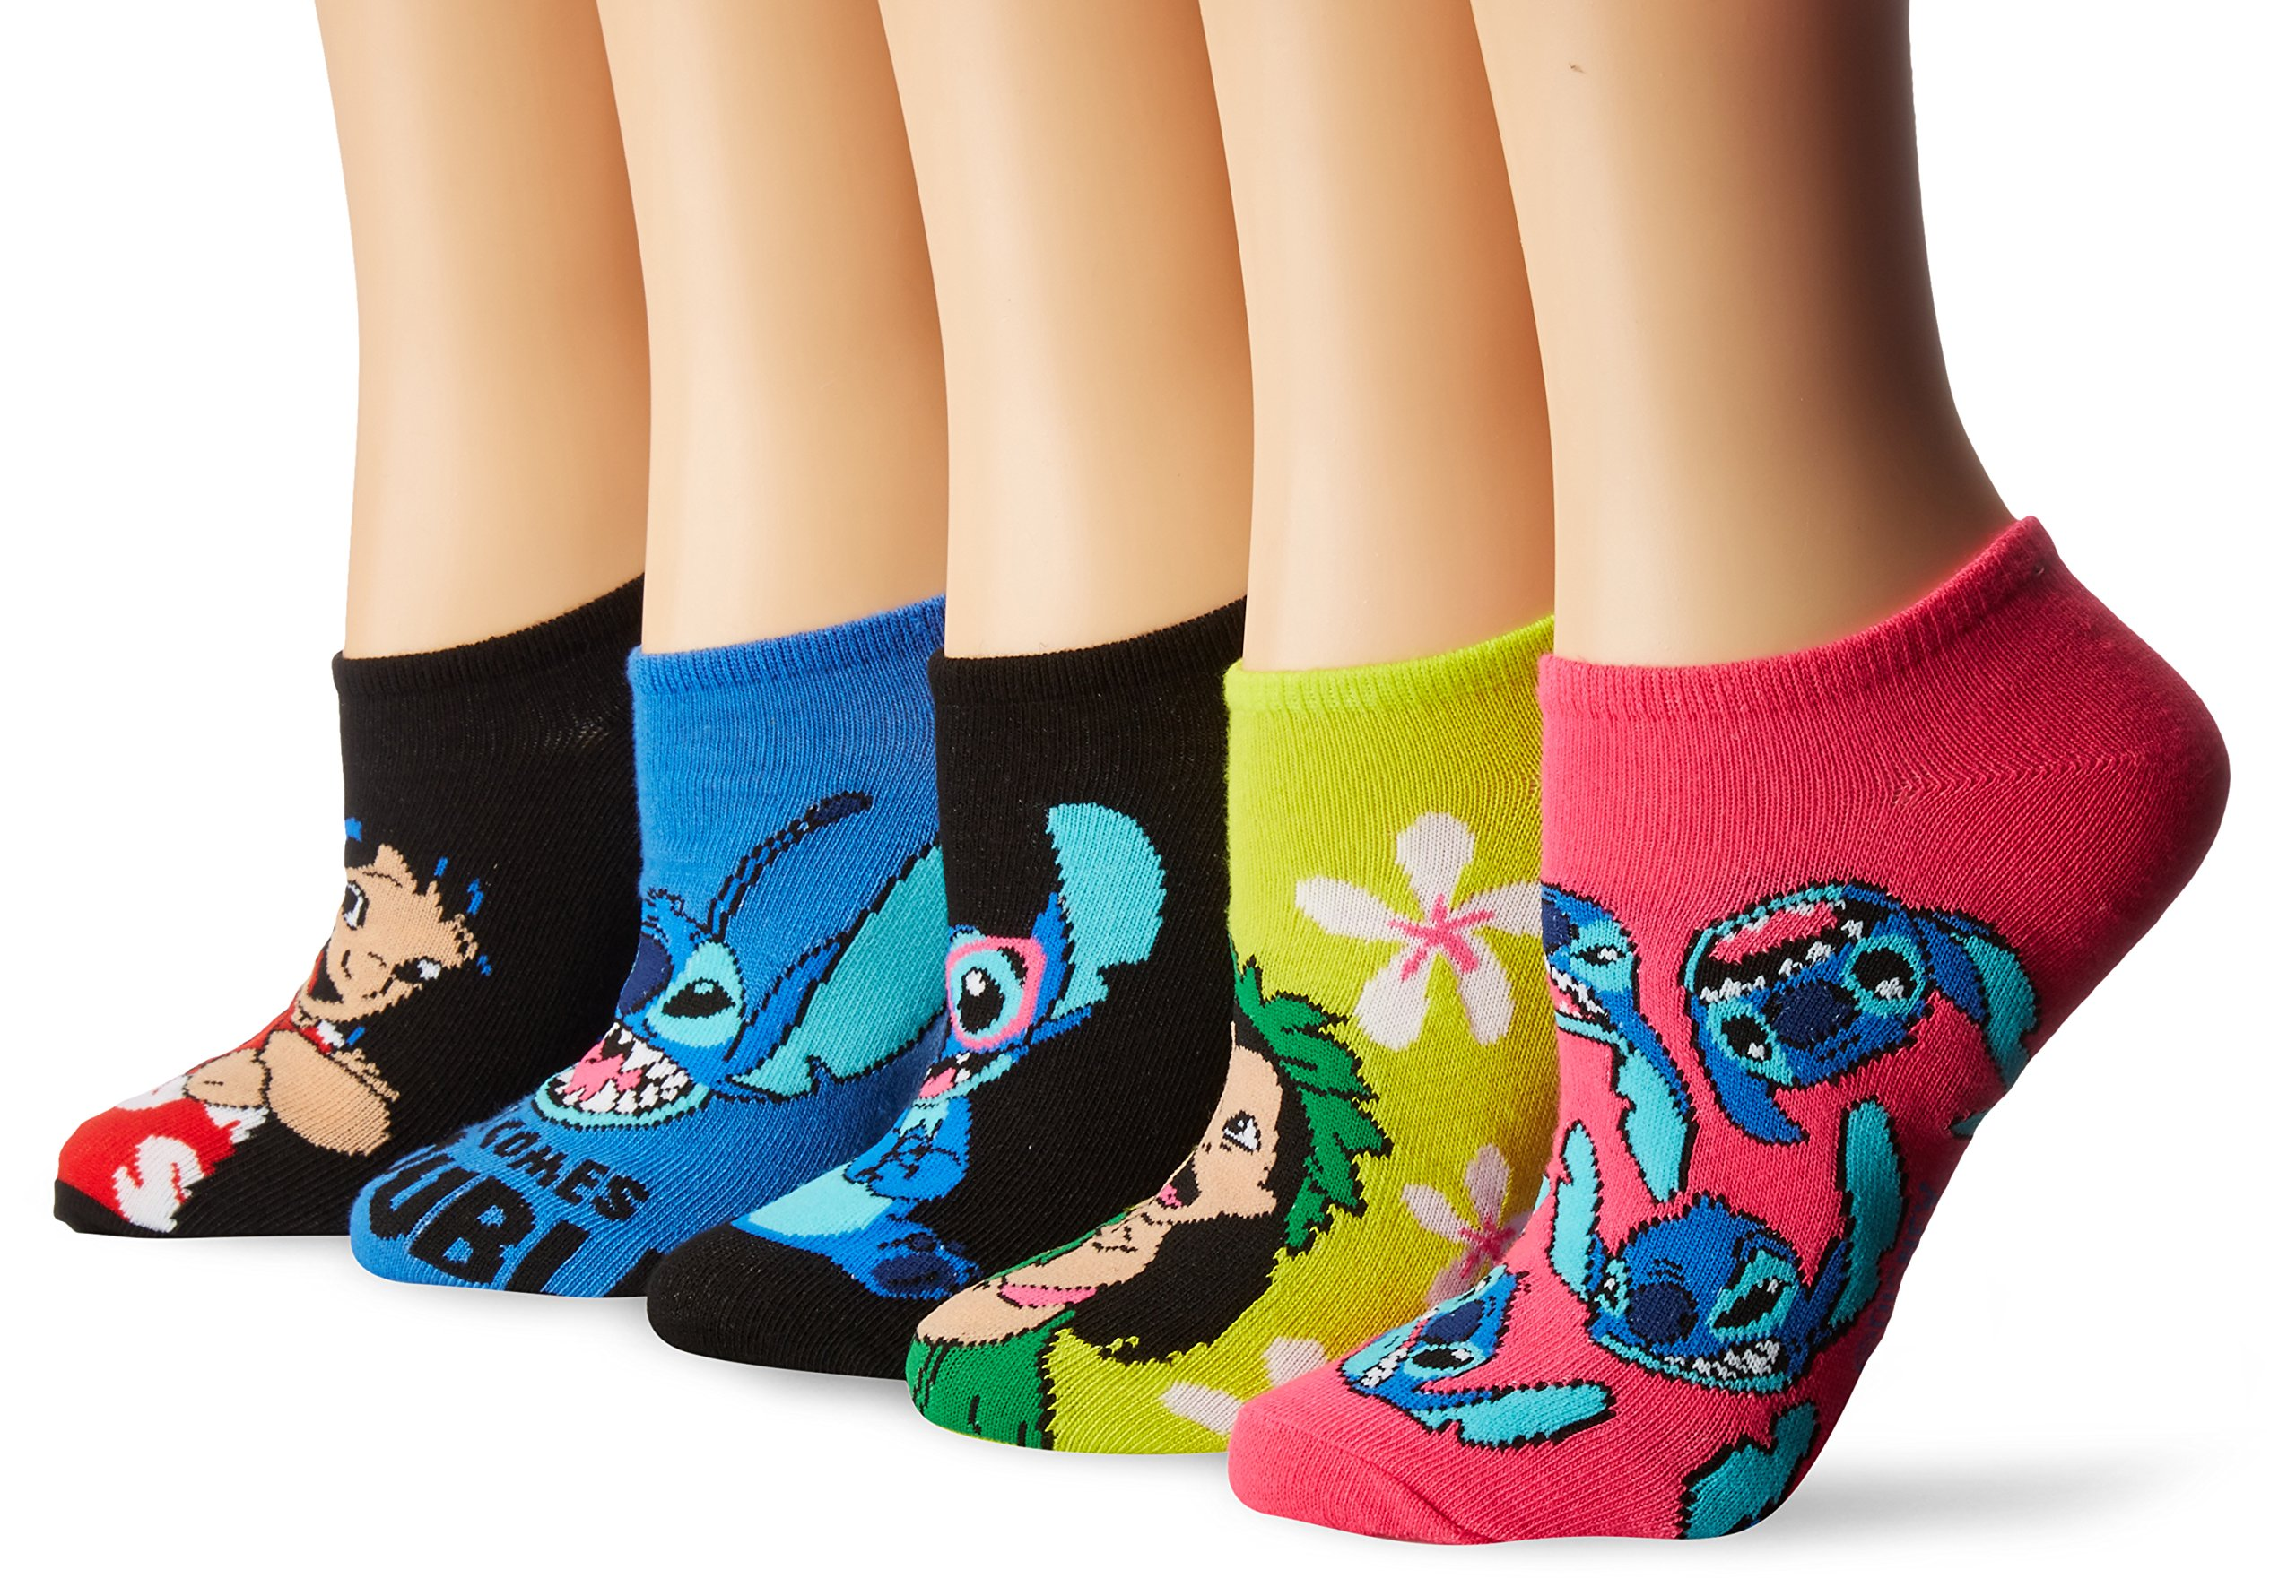 Disney Women's Lilo & Stitch 5 Pack No Show, Assorted Bright Fits Sock Size 9-11; Fits Shoe Size 4-10.5